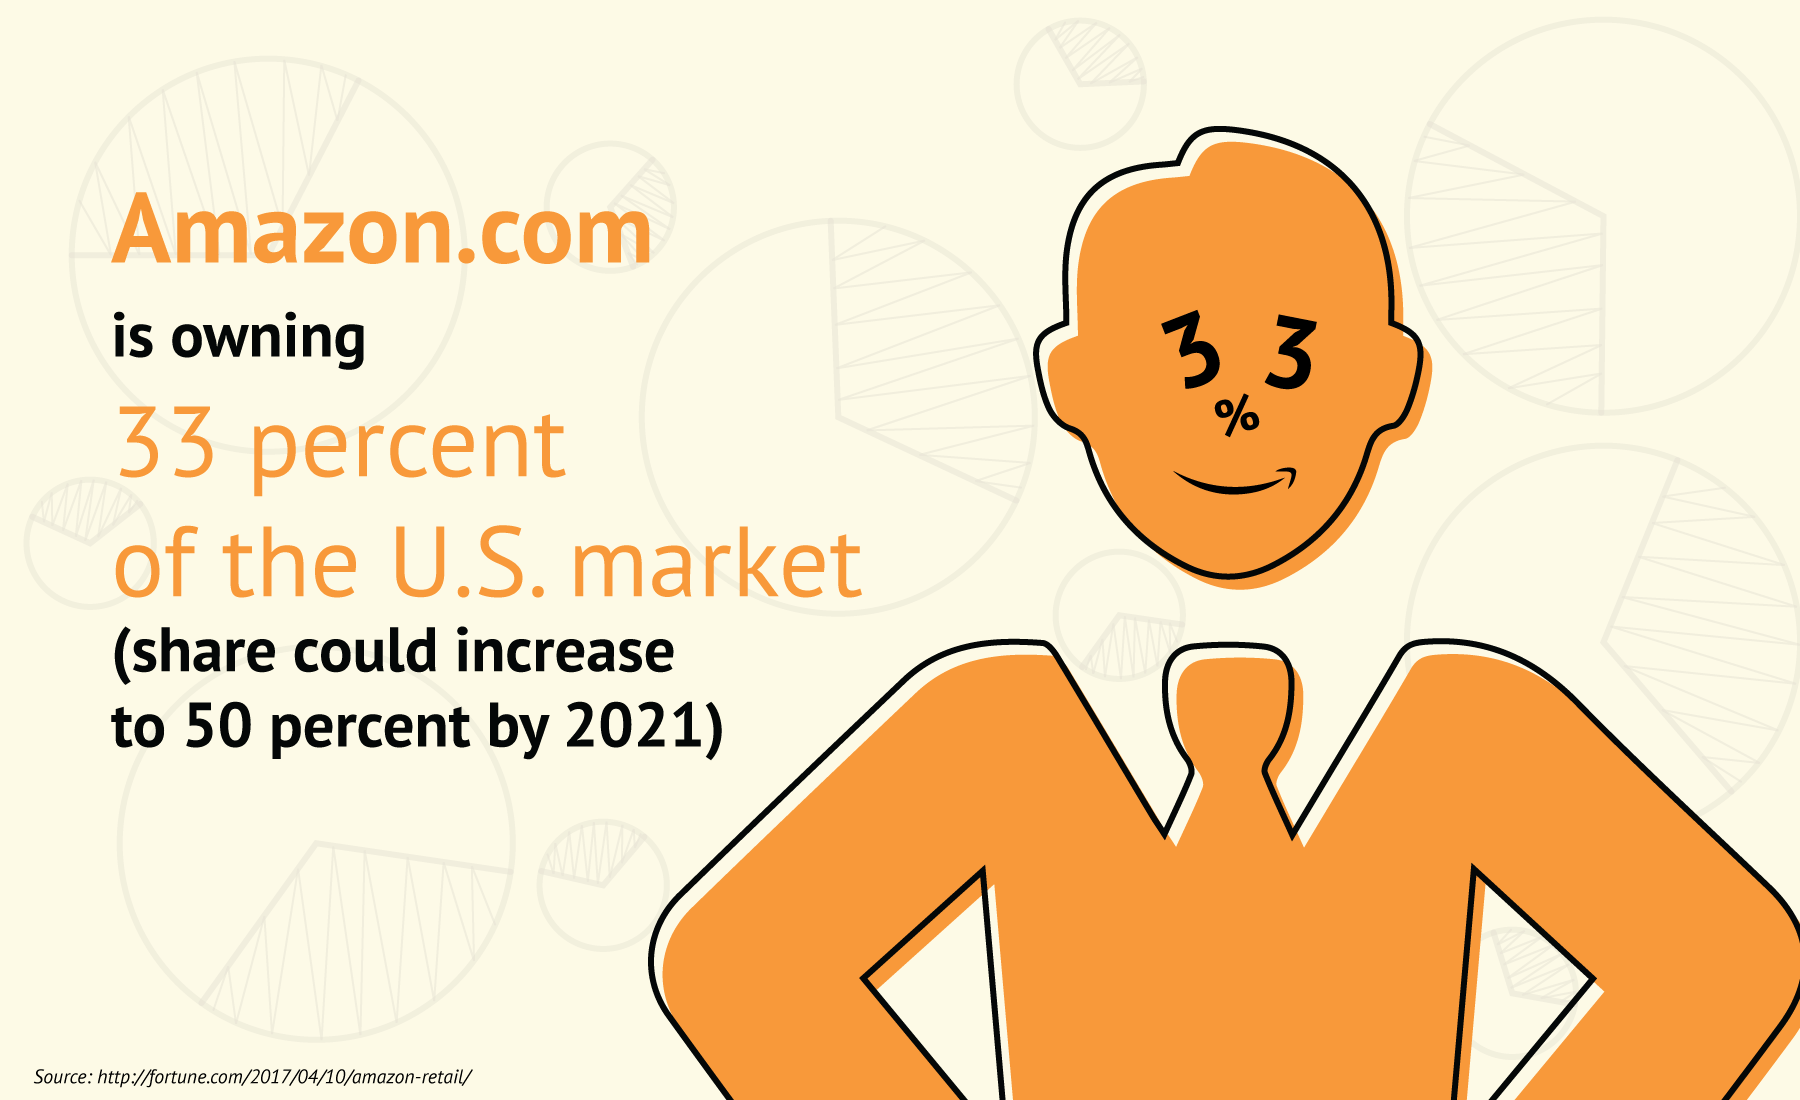 Amazon.com is owning 33 percent of the U.S. market and its share could increase to 50 percent by 2021